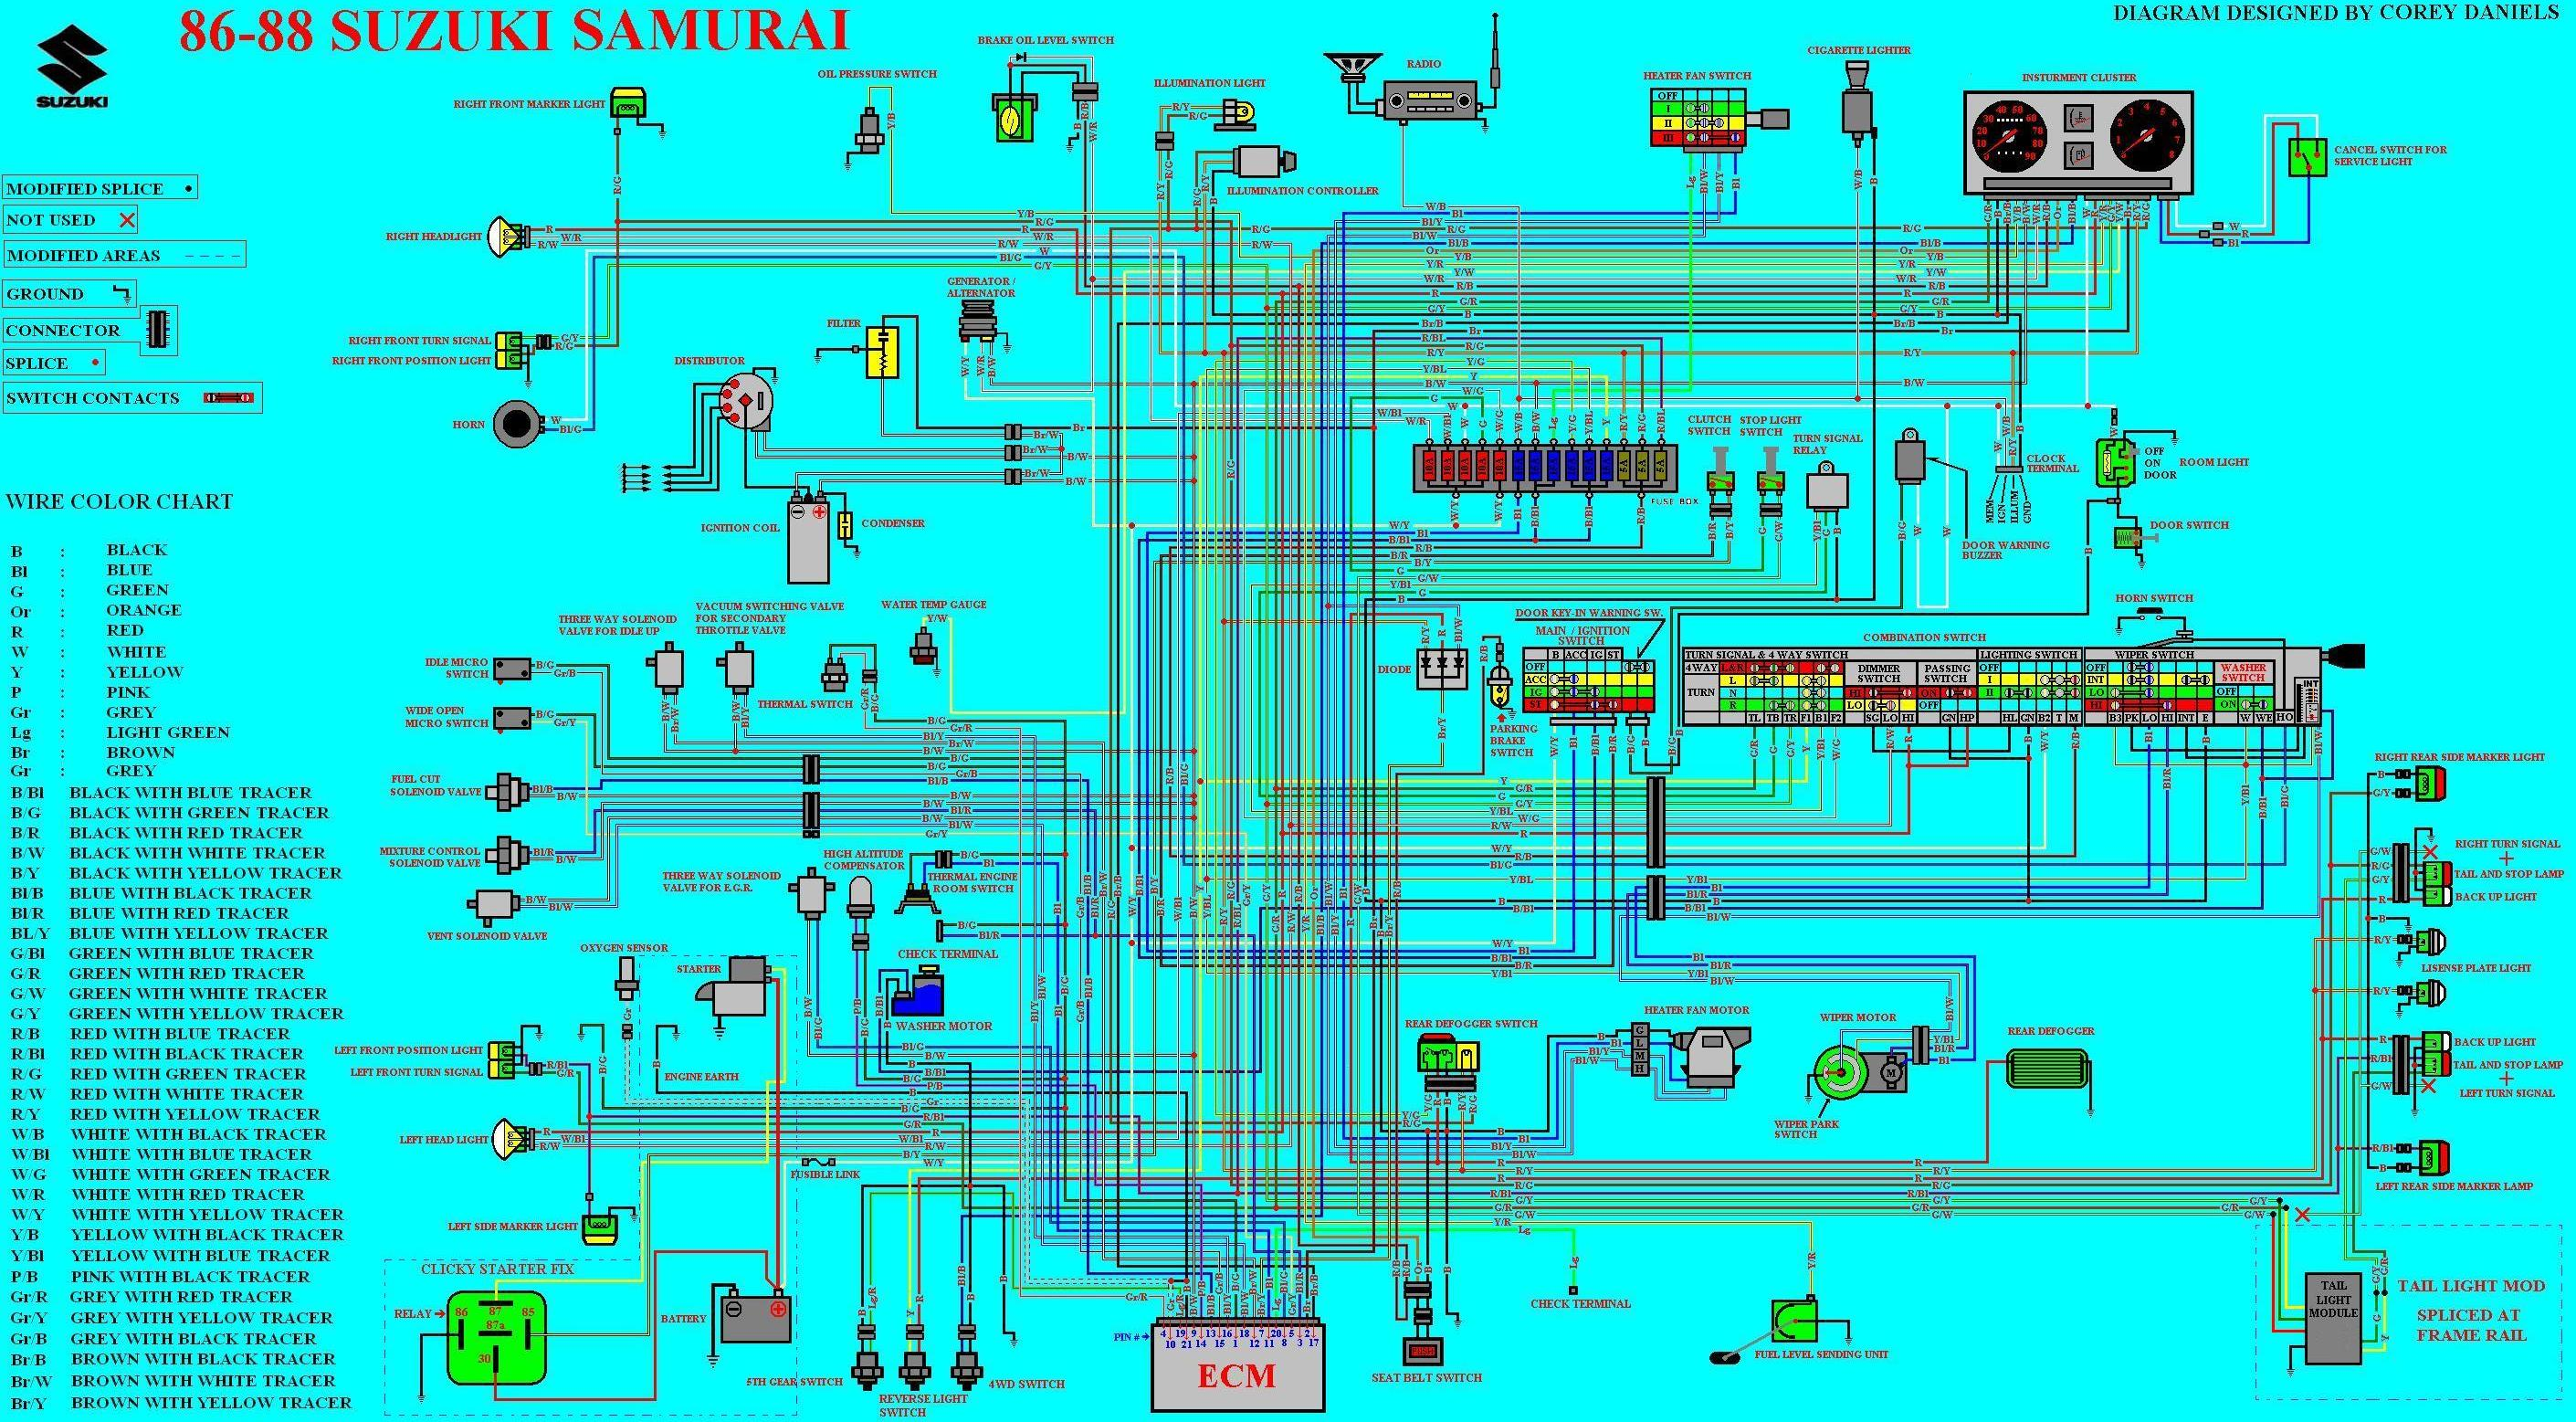 Dices_Samurai_wiring_Diagram suzuki wiring diagram wiring diagram 2002 suzuki xl7 \u2022 free wiring 1988 suzuki samurai radio wiring diagram at n-0.co